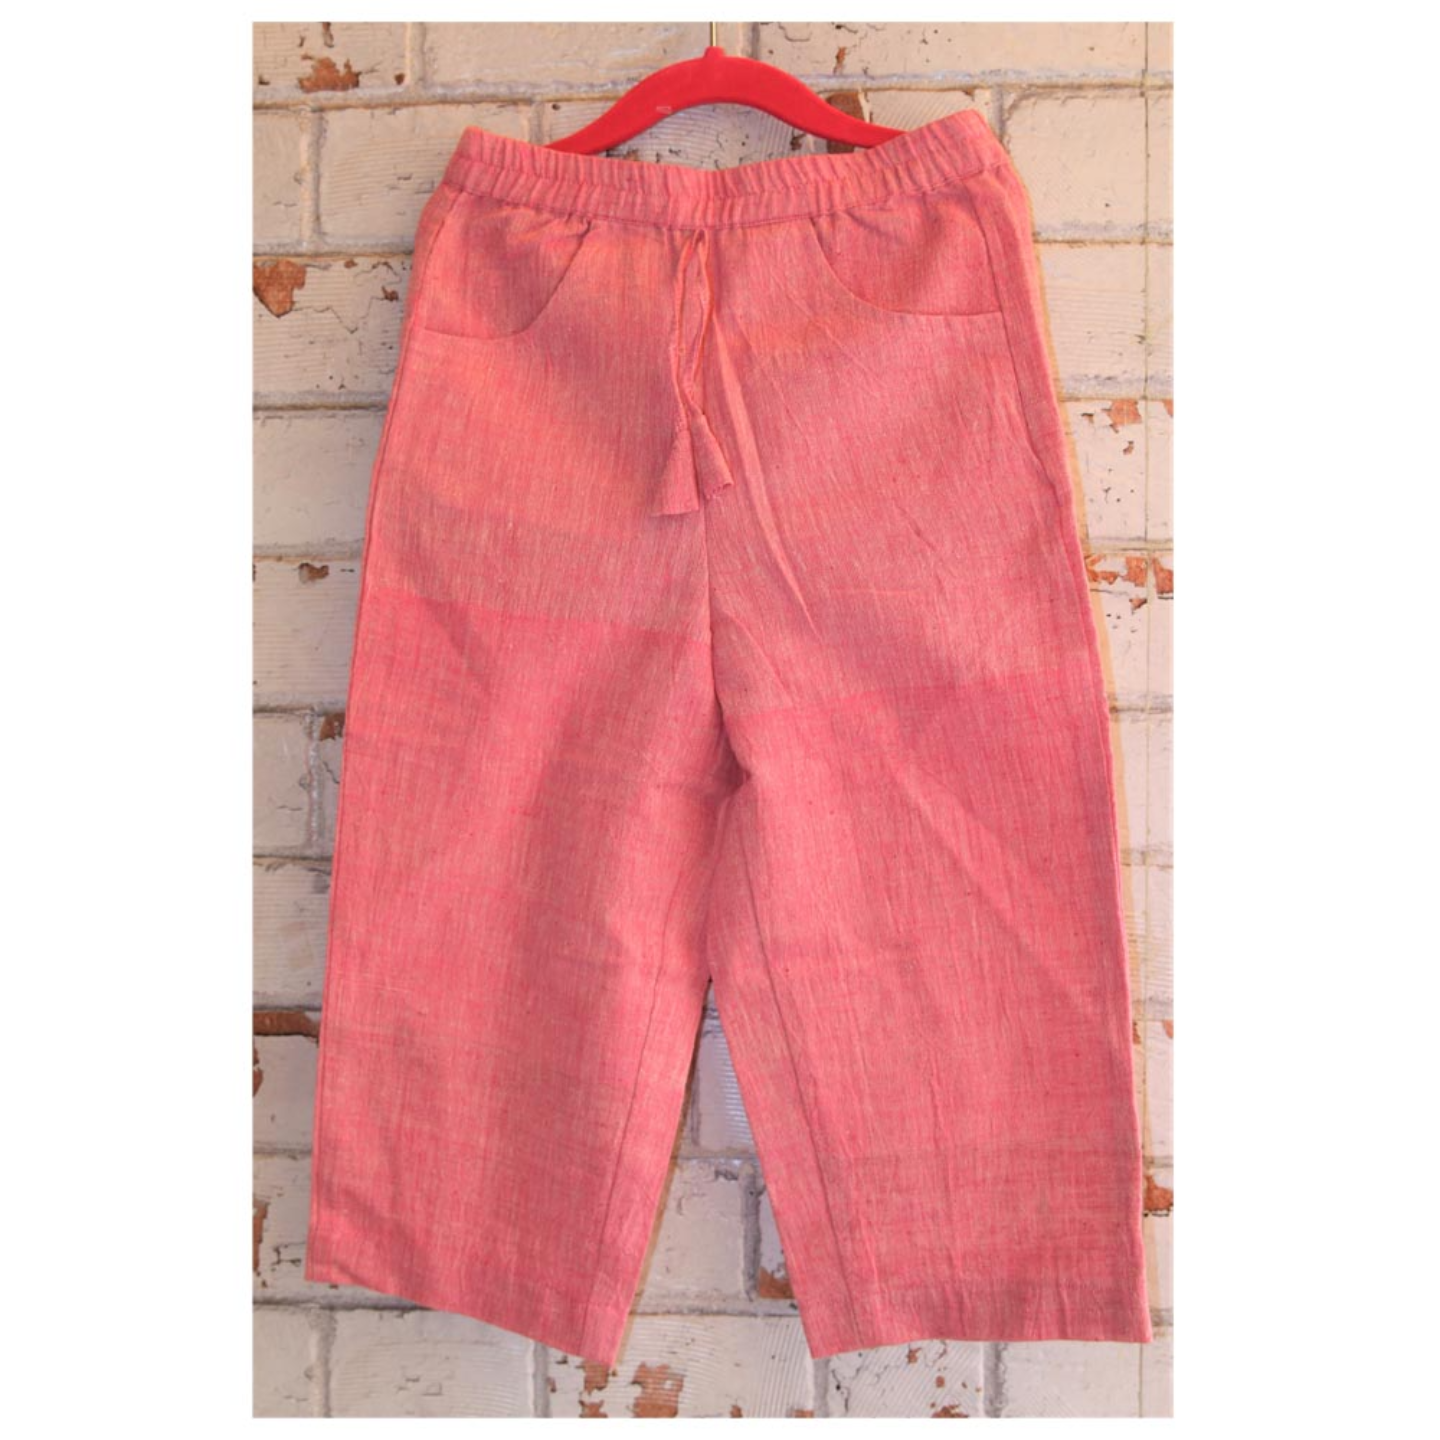 Pink Handloom Kala Cotton Girls Pant